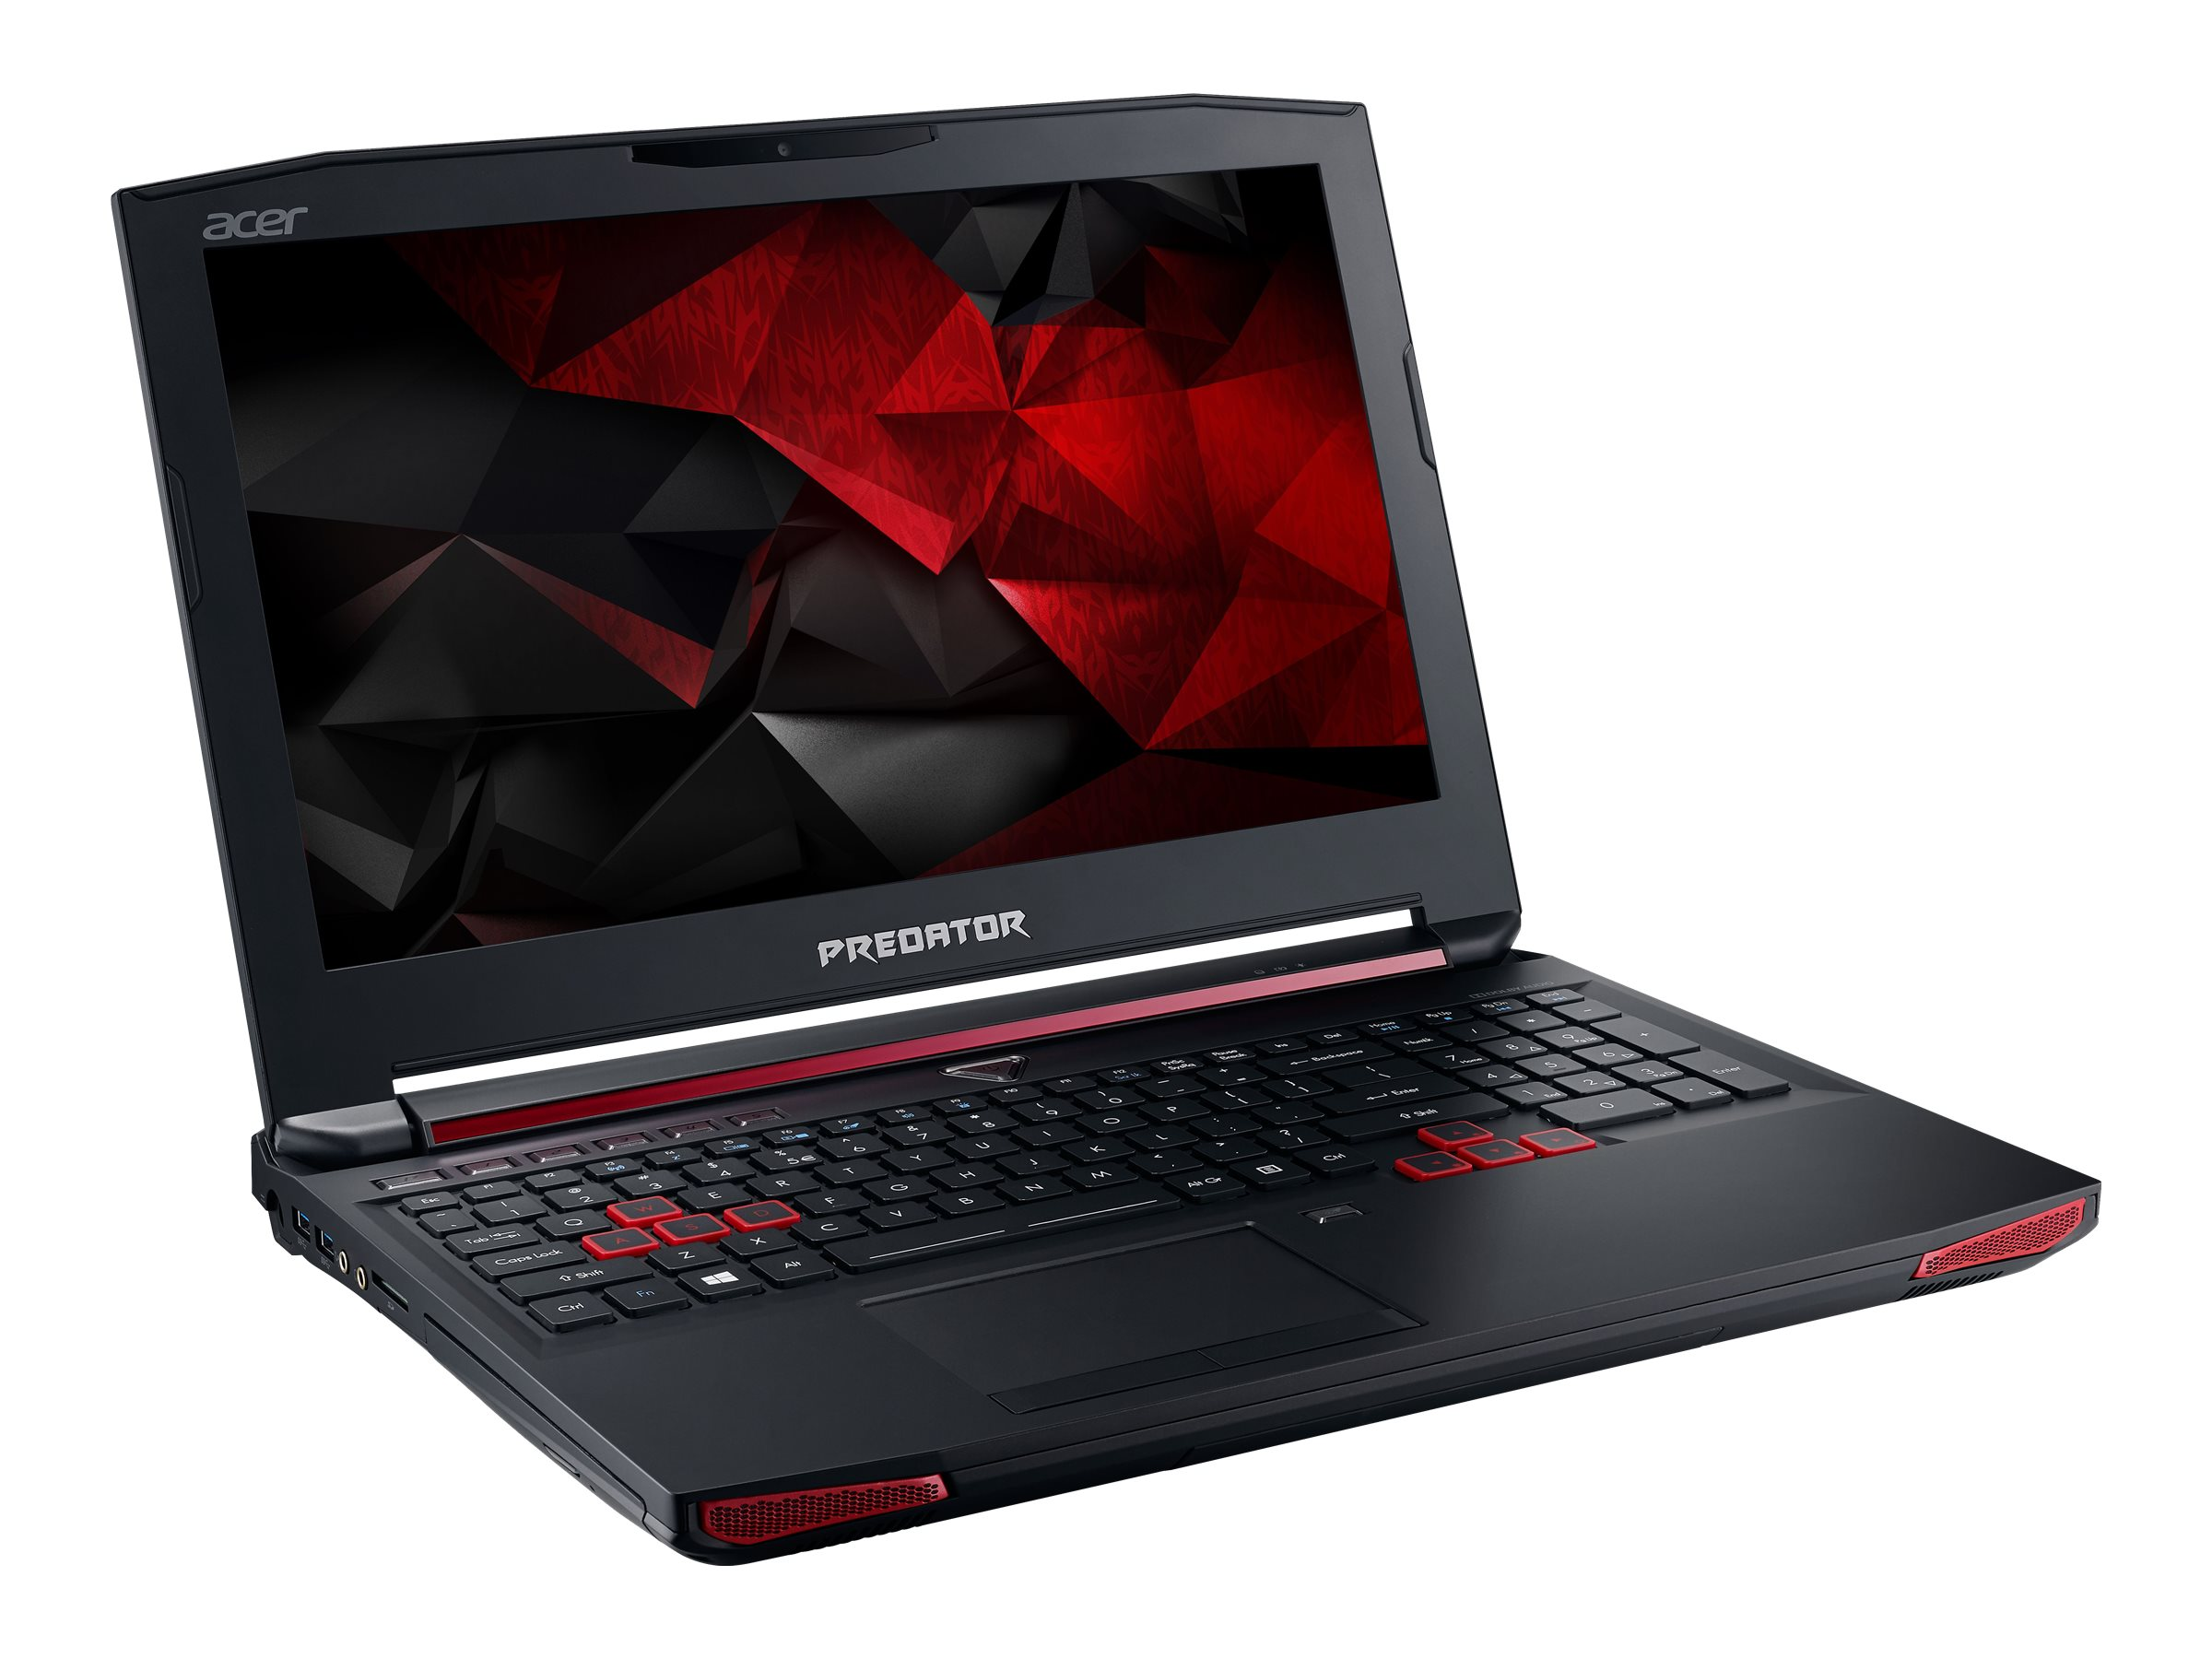 Acer NX.Q05AA.001 Image 3